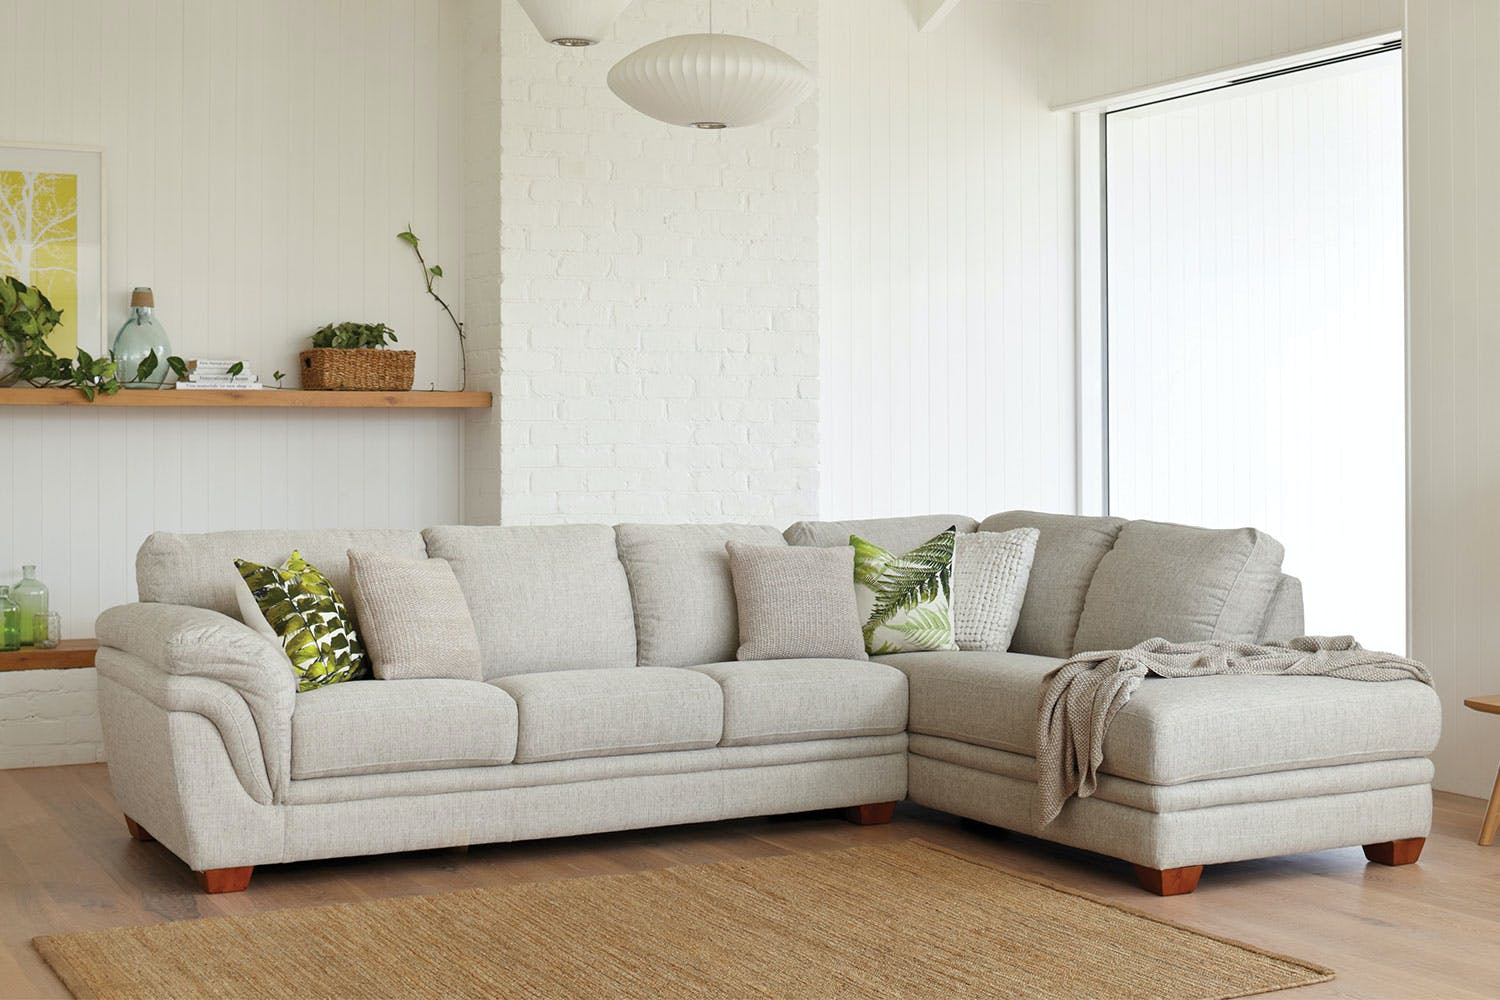 Tremendous Demi 3 Seater Fabric Sofa With Chaise By La Z Boy Bralicious Painted Fabric Chair Ideas Braliciousco